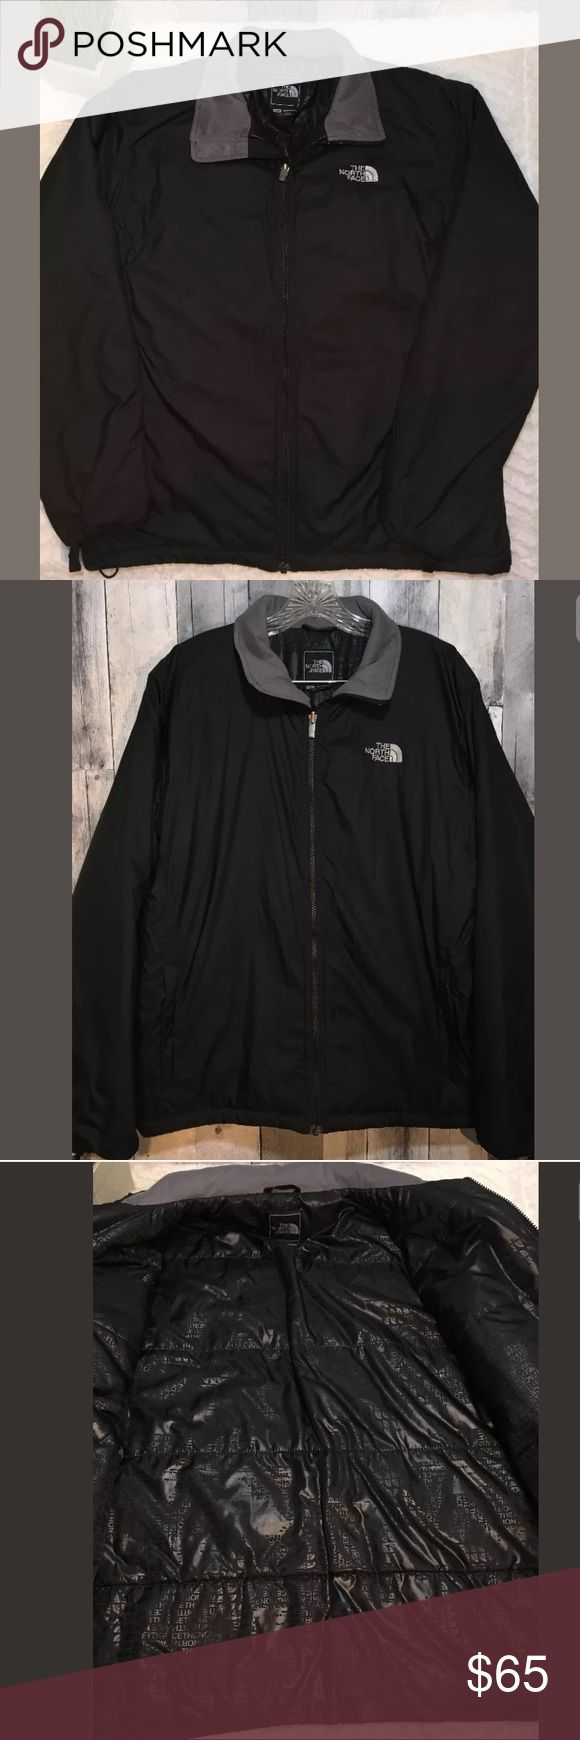 """THE NORTH FACE Mens Lightweight Black Puff Jacket THE NORTH FACE Mens Lightweight Black Puff Jacket Sz Large  Men's jacket is in excellent condition. The small flaw is that at the beginning of the zipper it is missing 2 teeth plus the silver pin is missing  however the jacket and zipper is in PERFECT WORKING condition. The zipper does not come apart if pulled and is fully functional. Please see picture  Armpit to armpit: 25"""" Length: 27.5"""" The North Face Jackets & Coats Puffers"""